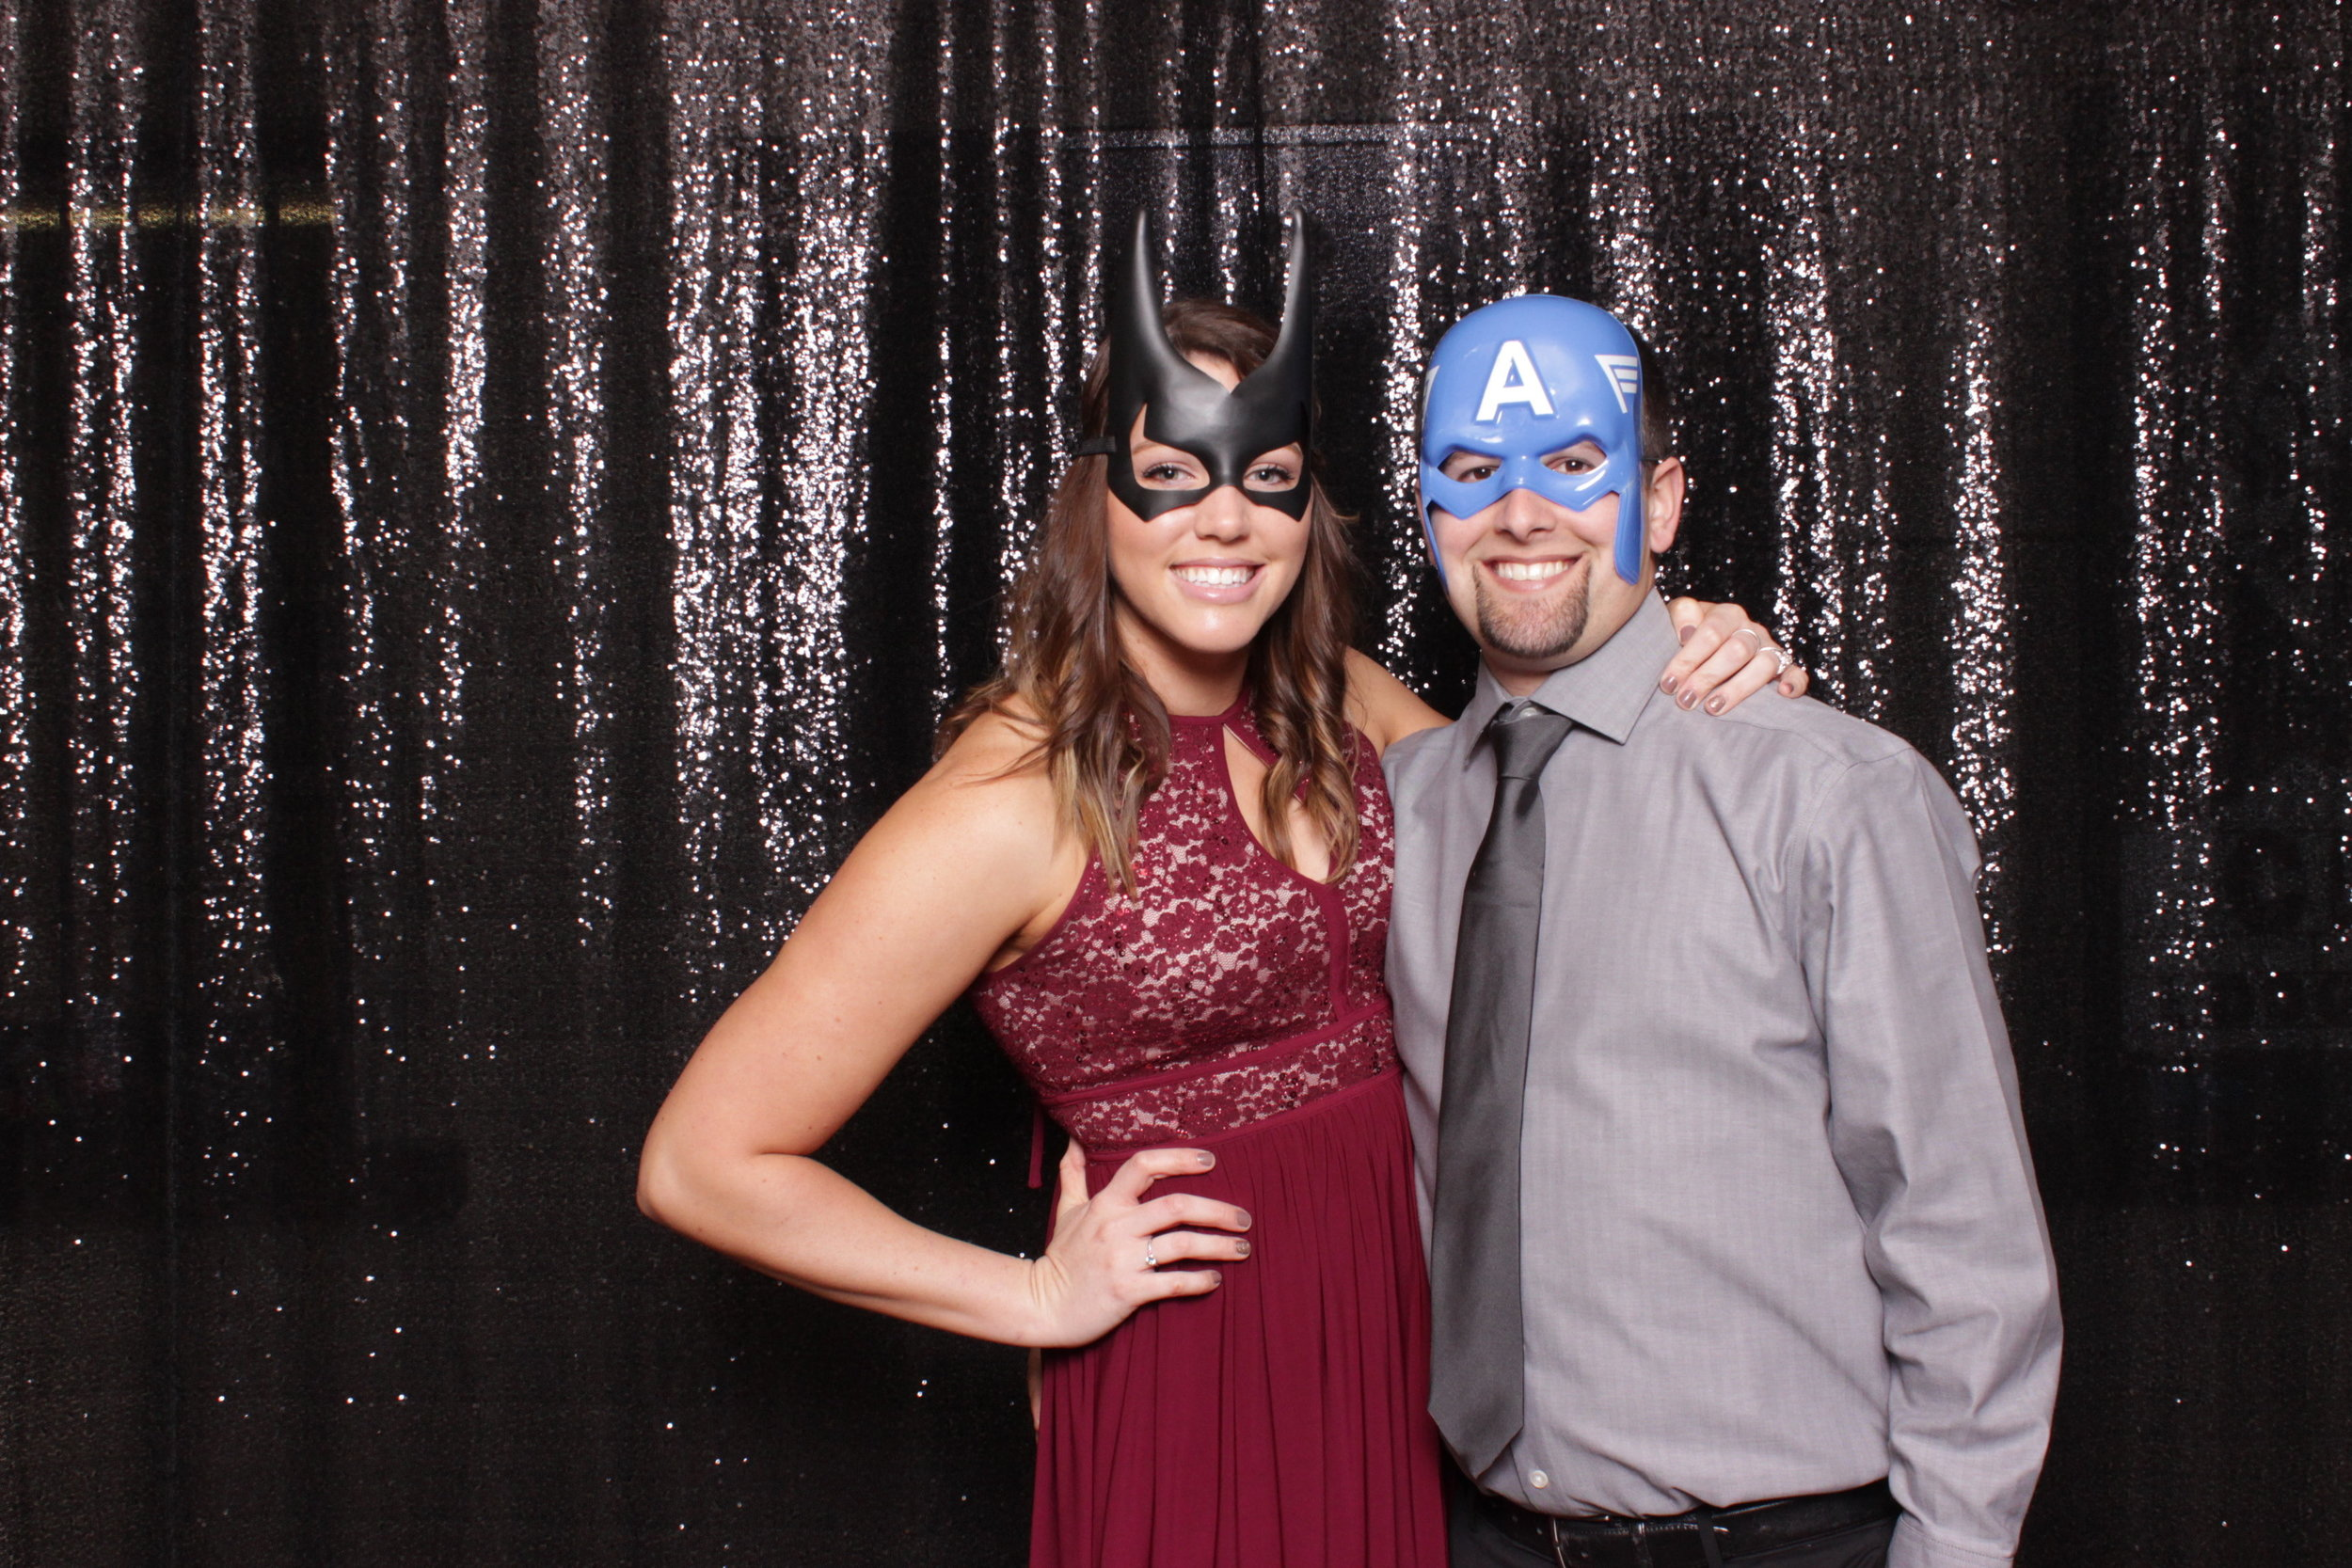 chico-trebooth-photo-booth-rental.jpg